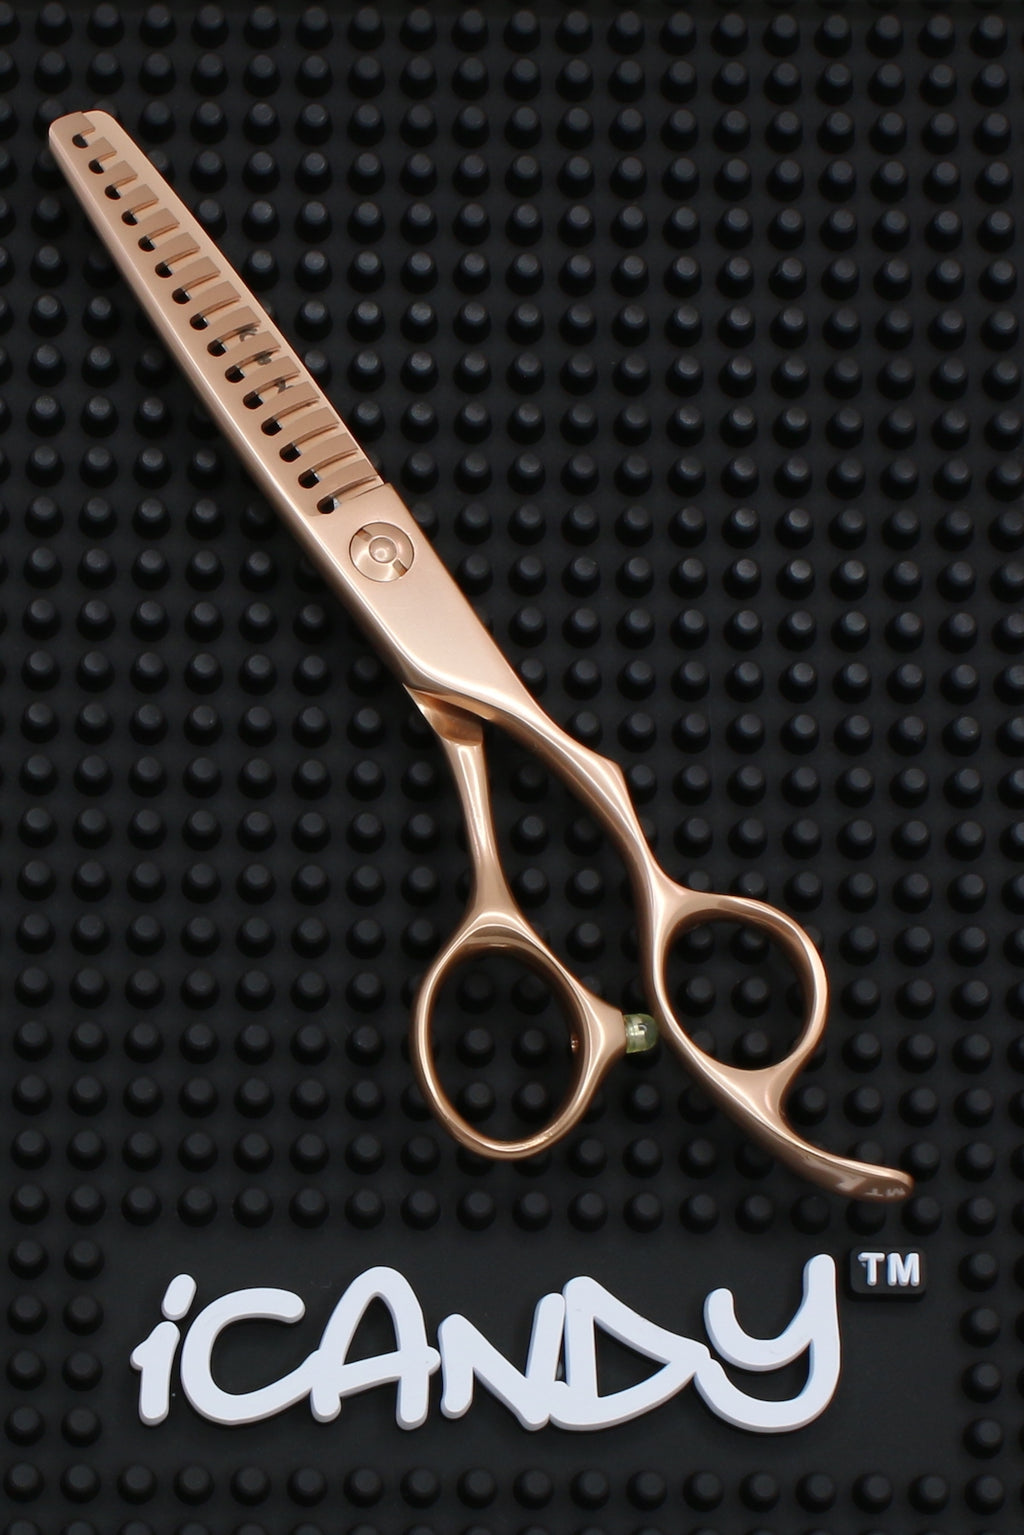 iCandy Elite-Tex Rose Gold Texturising Scissors - Limited Edition ! (6.0 inch) - iCandy Scissors